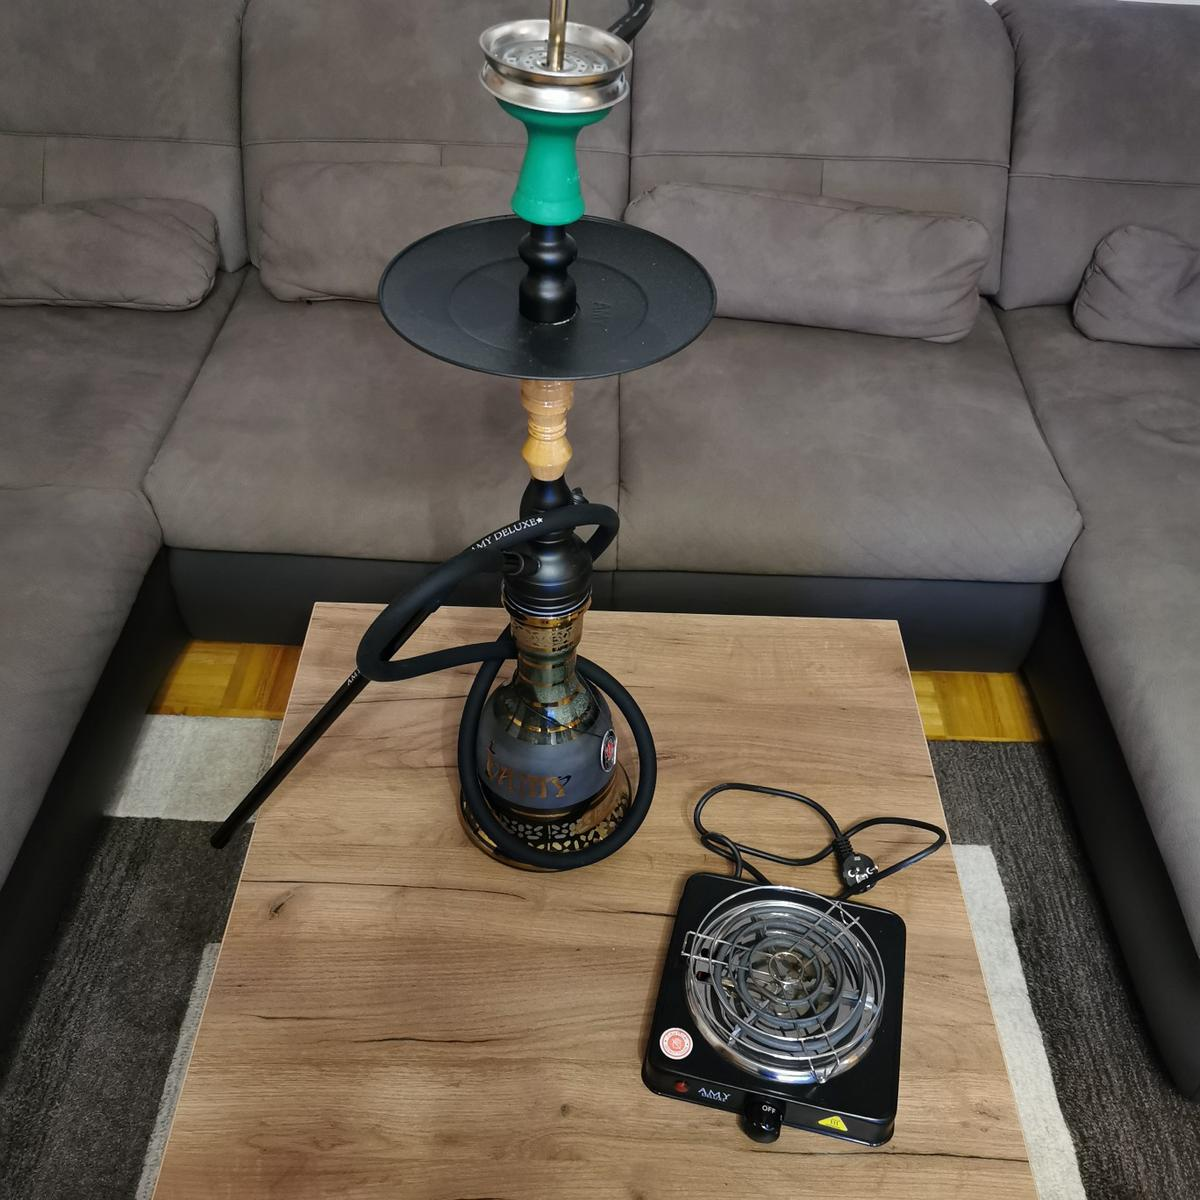 Amy Deluxe Nargila Shisha In 9500 Villach For 120 00 For Sale Shpock